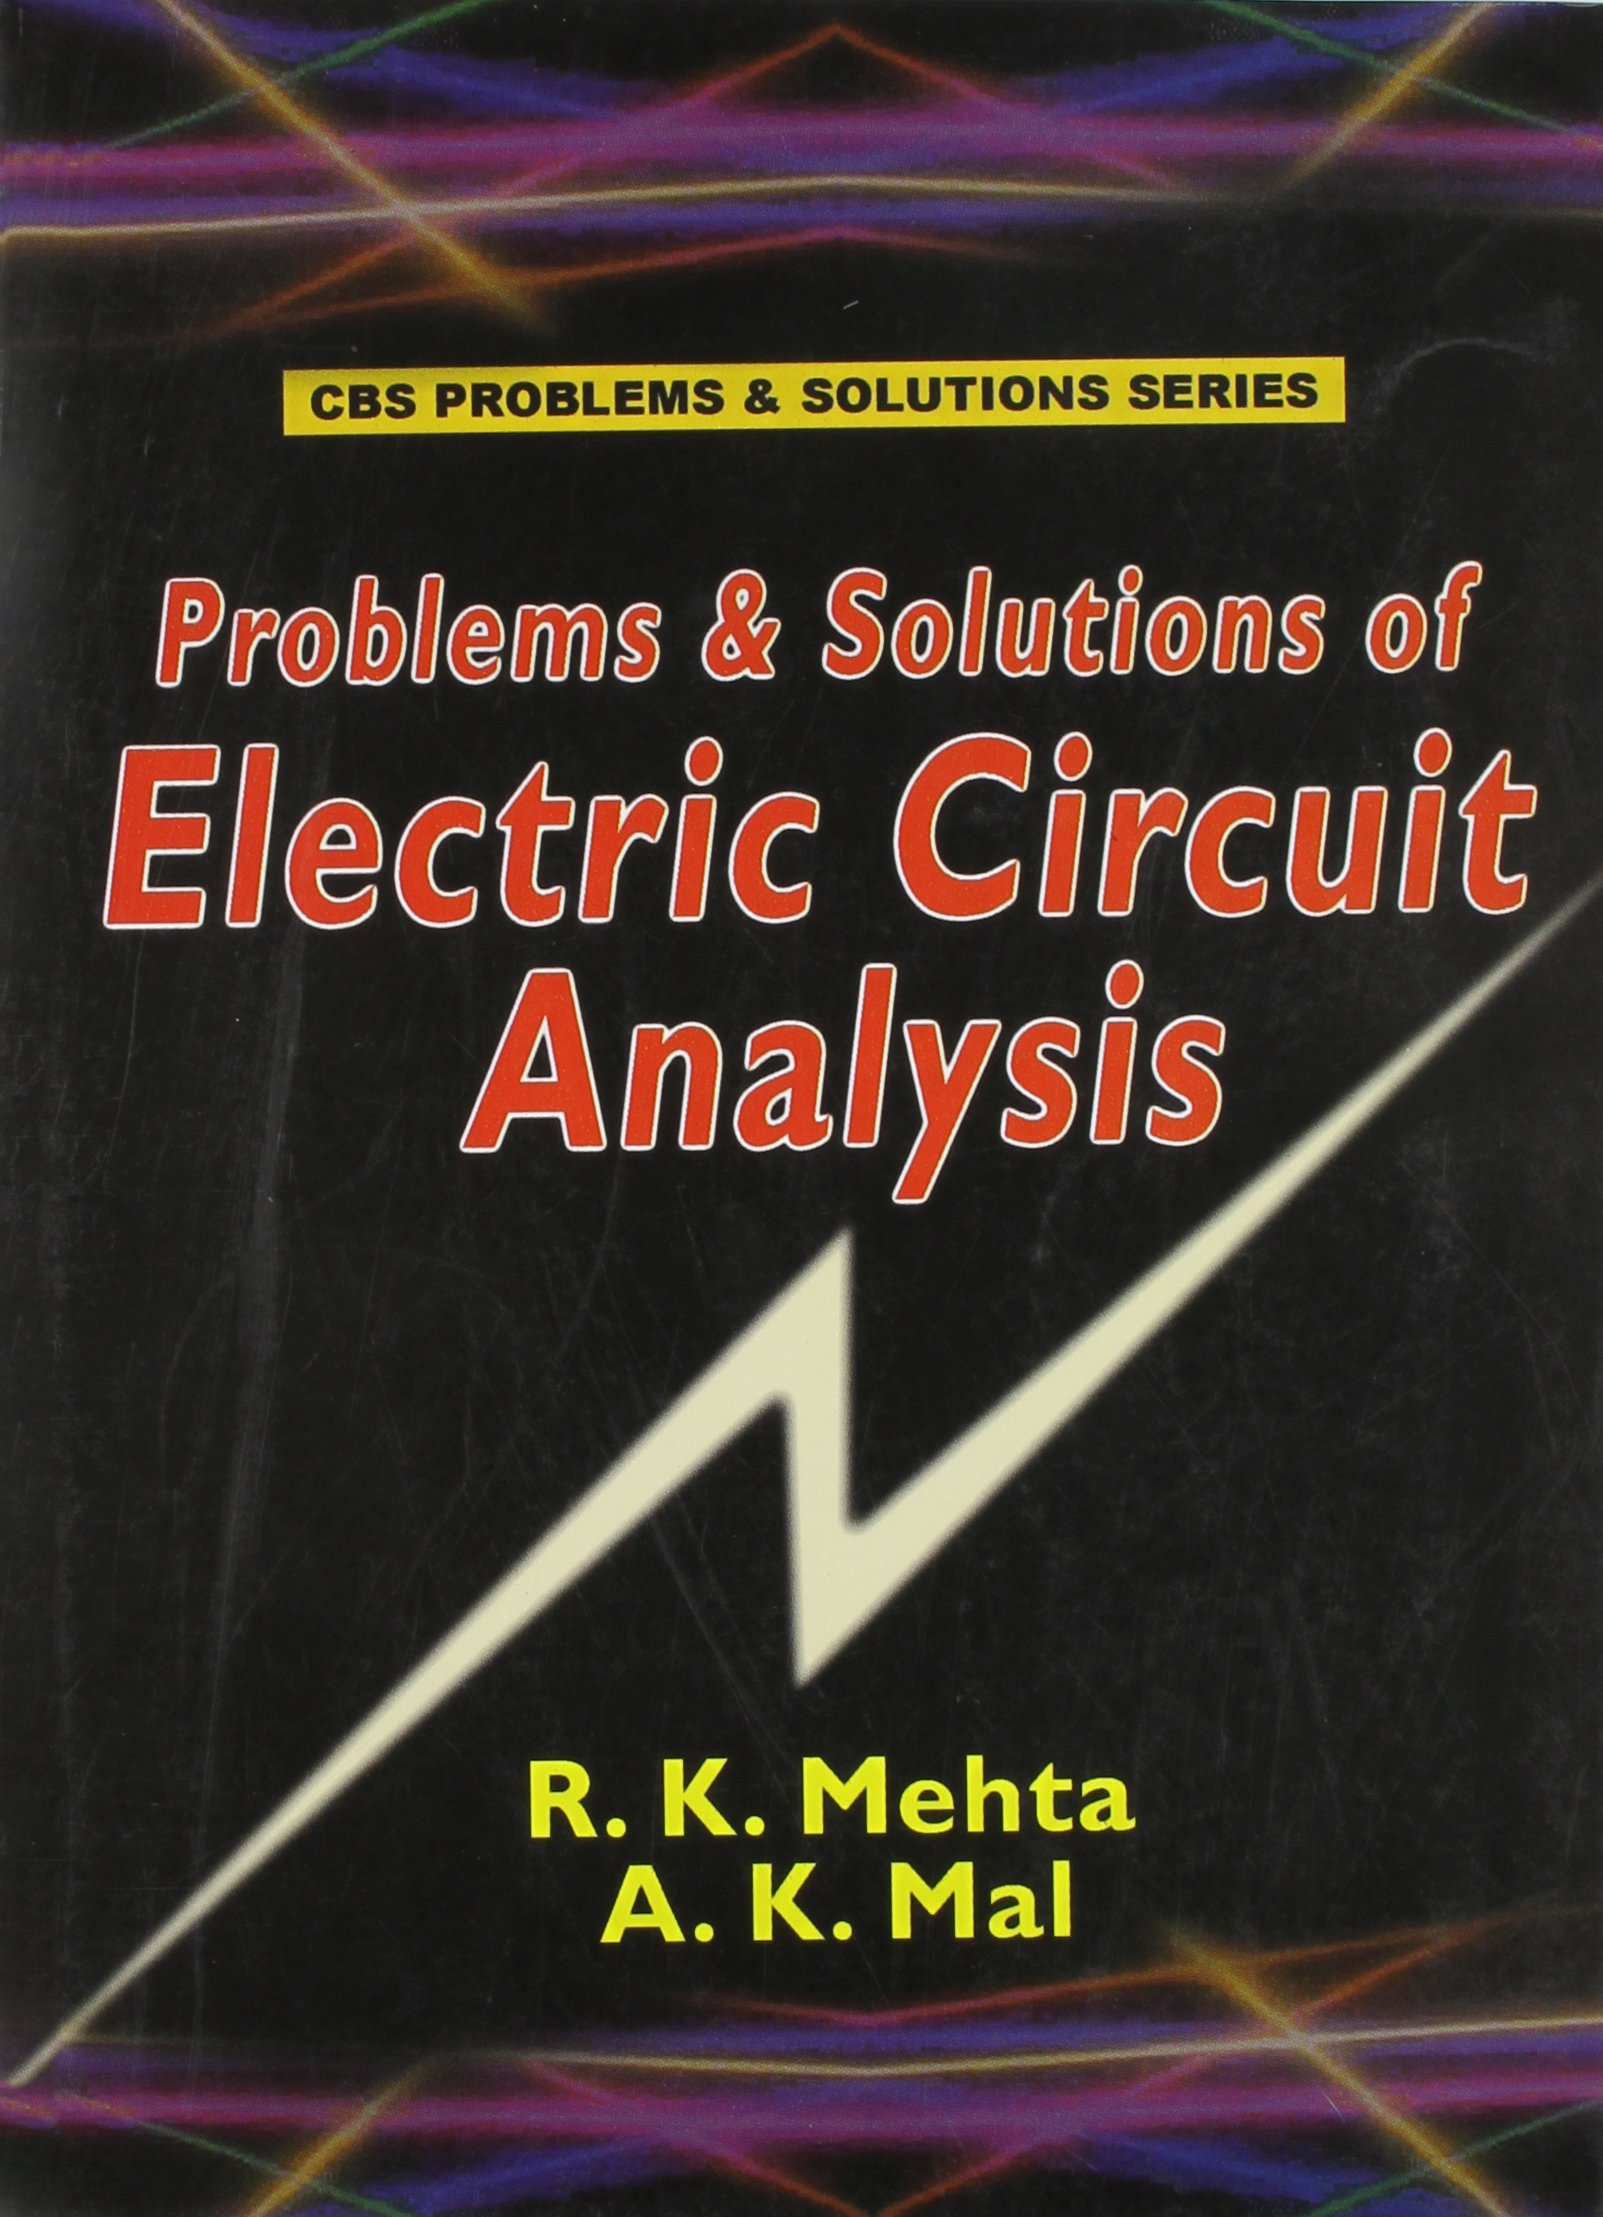 Buy CBS Problems and Solutions Series: Problems and Solutions in